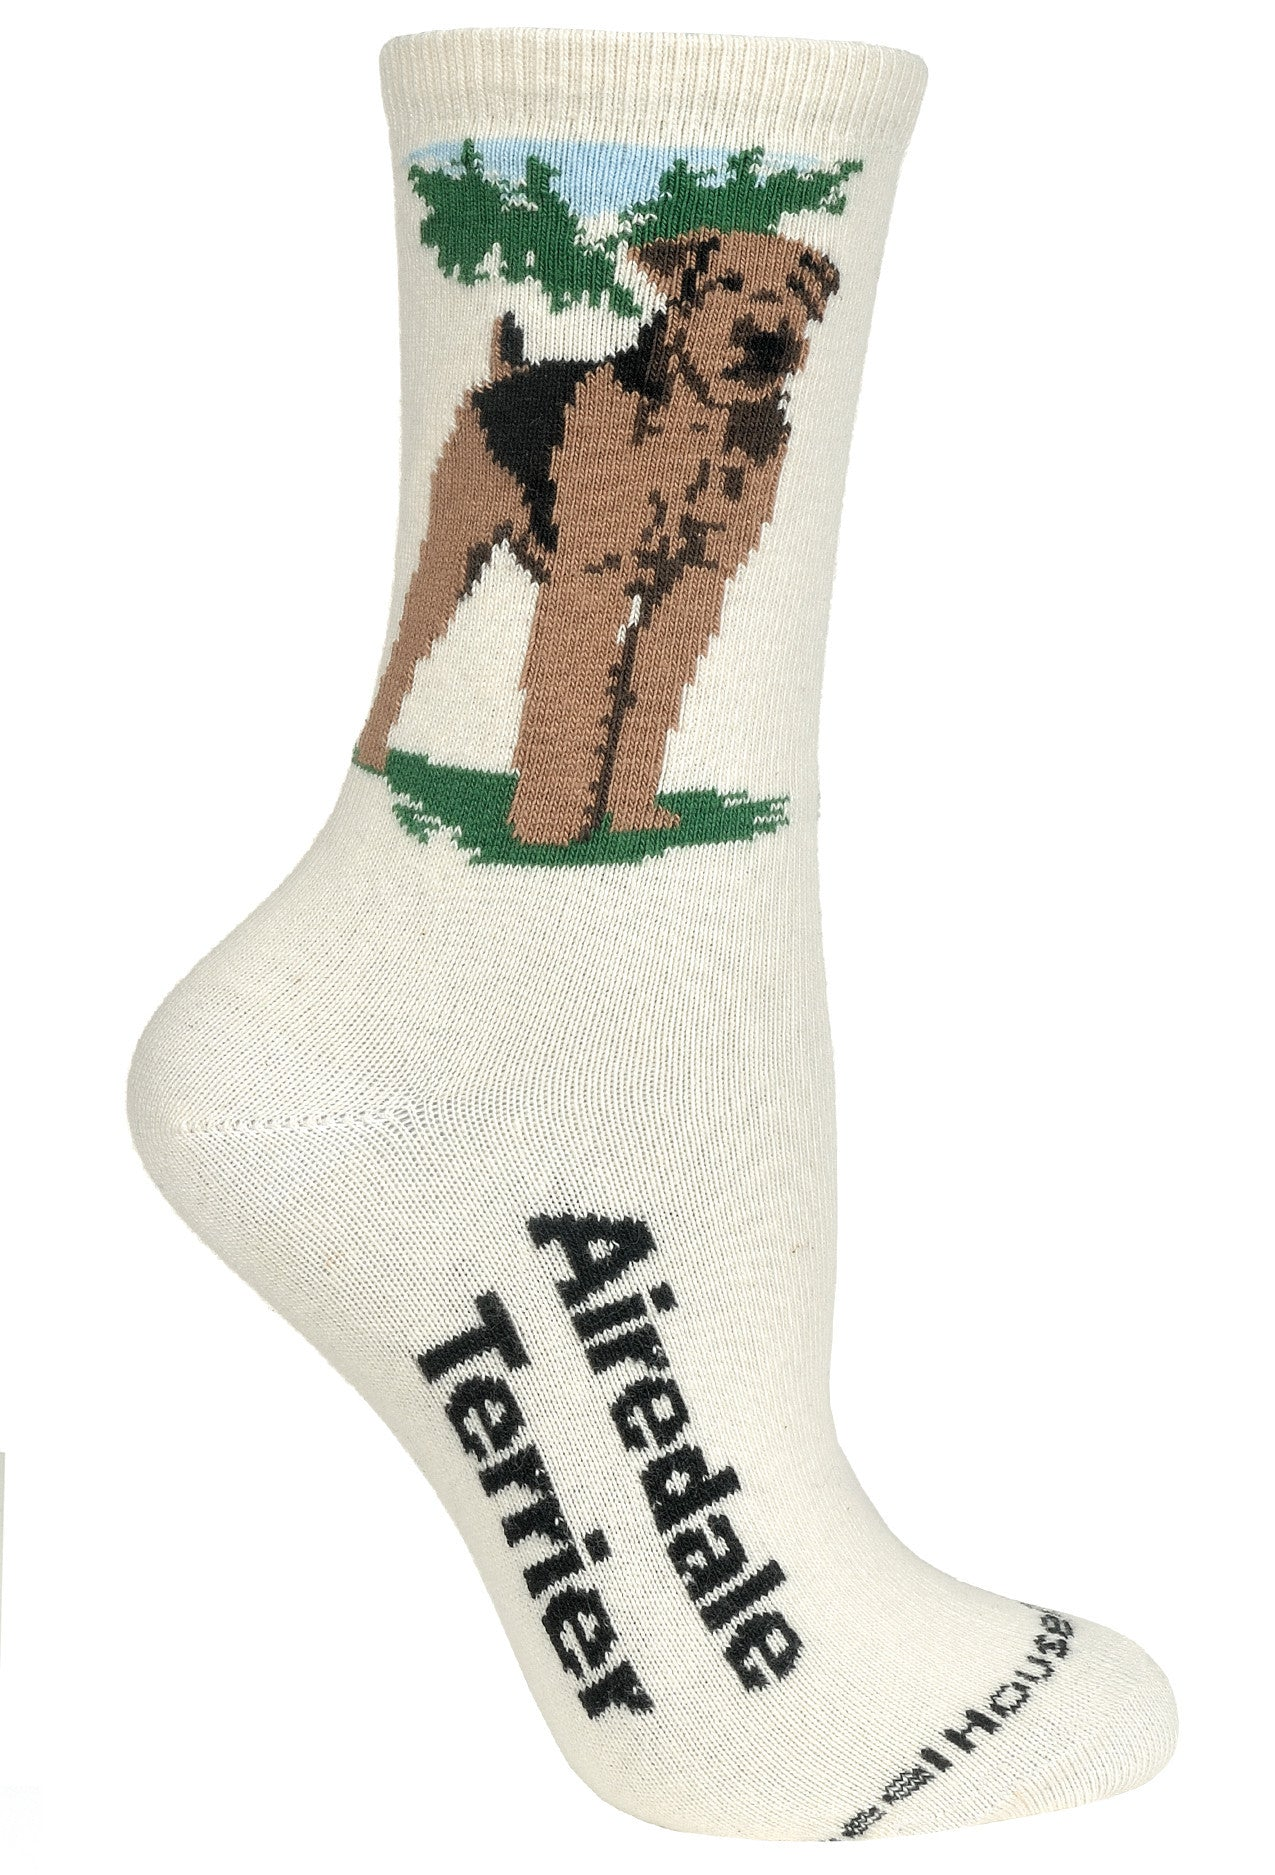 Airedale Terrier on Natural Socks